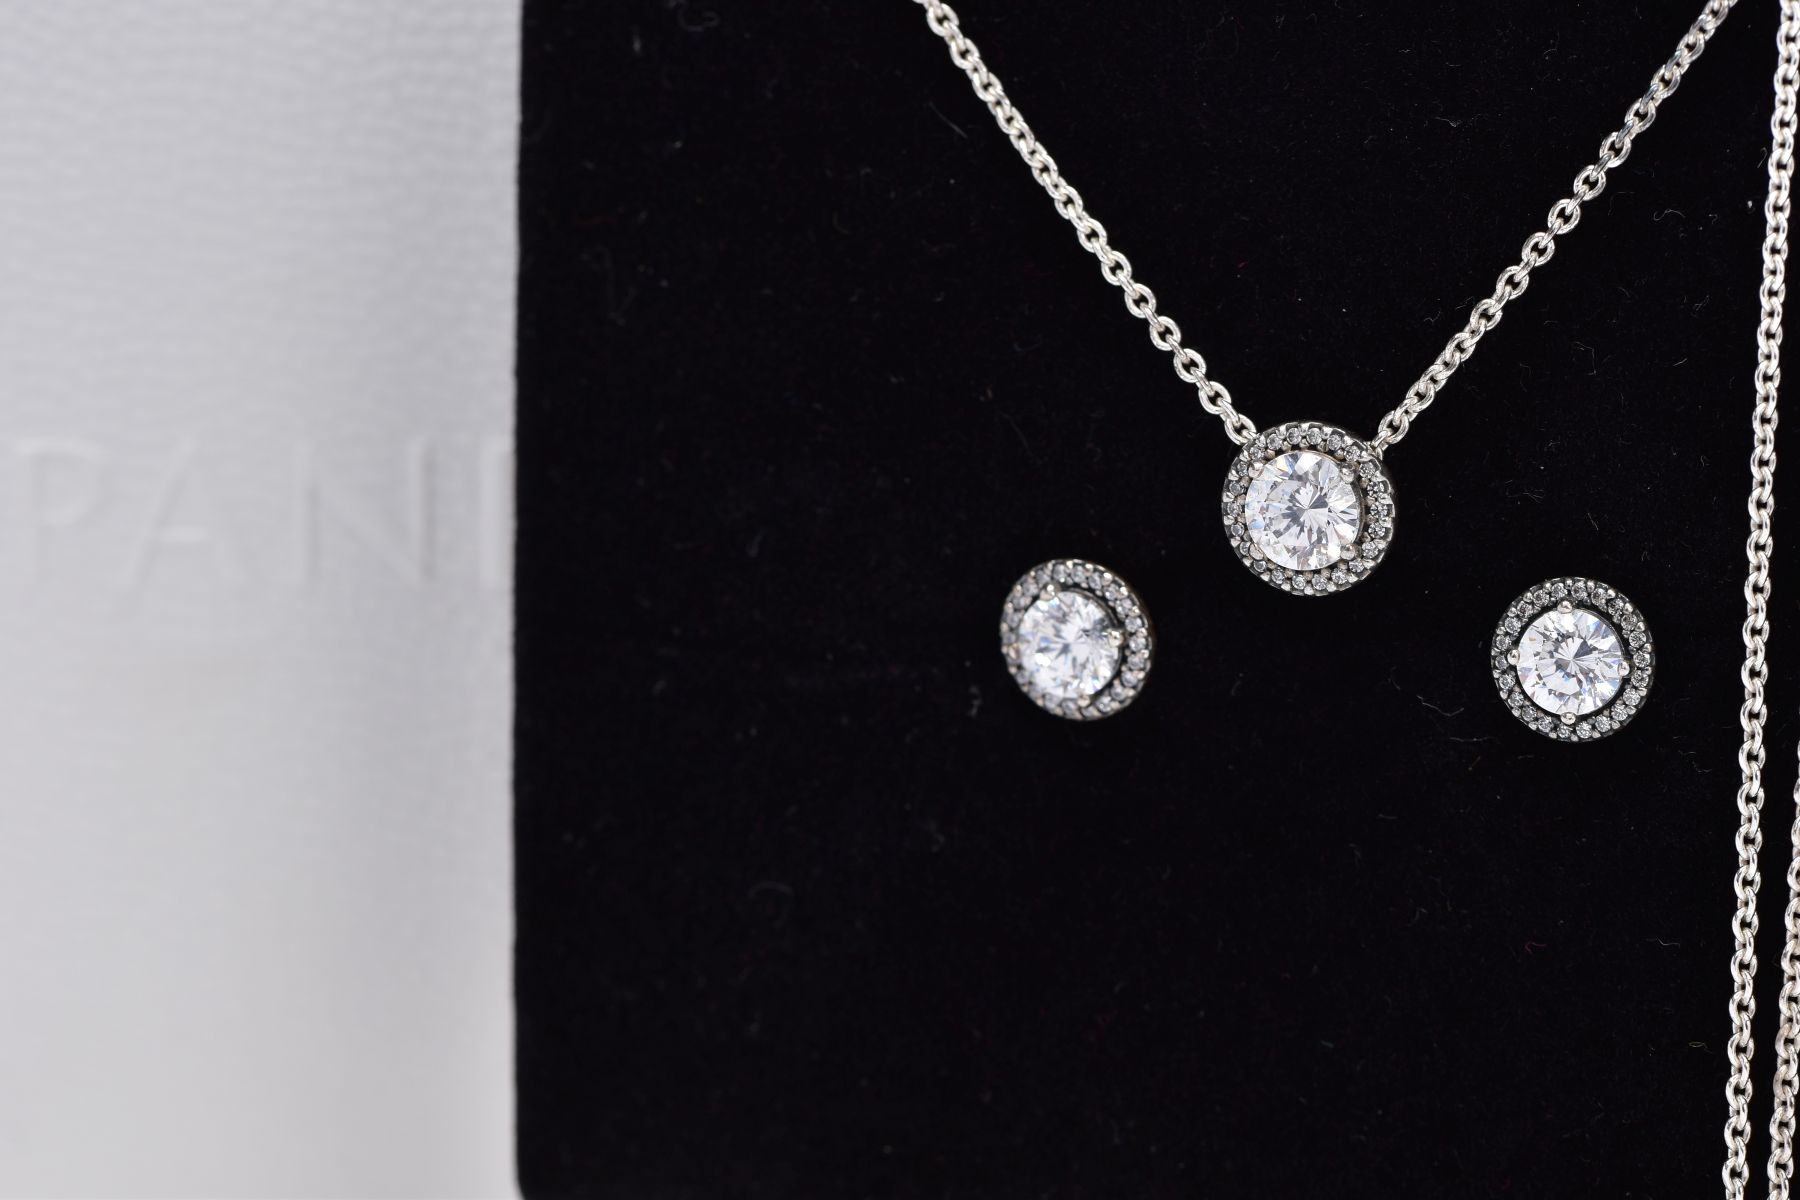 A PANDORA NECKLACE AND EARRING GIFT SET, the necklace designed with a cubic zirconia halo set - Image 2 of 3